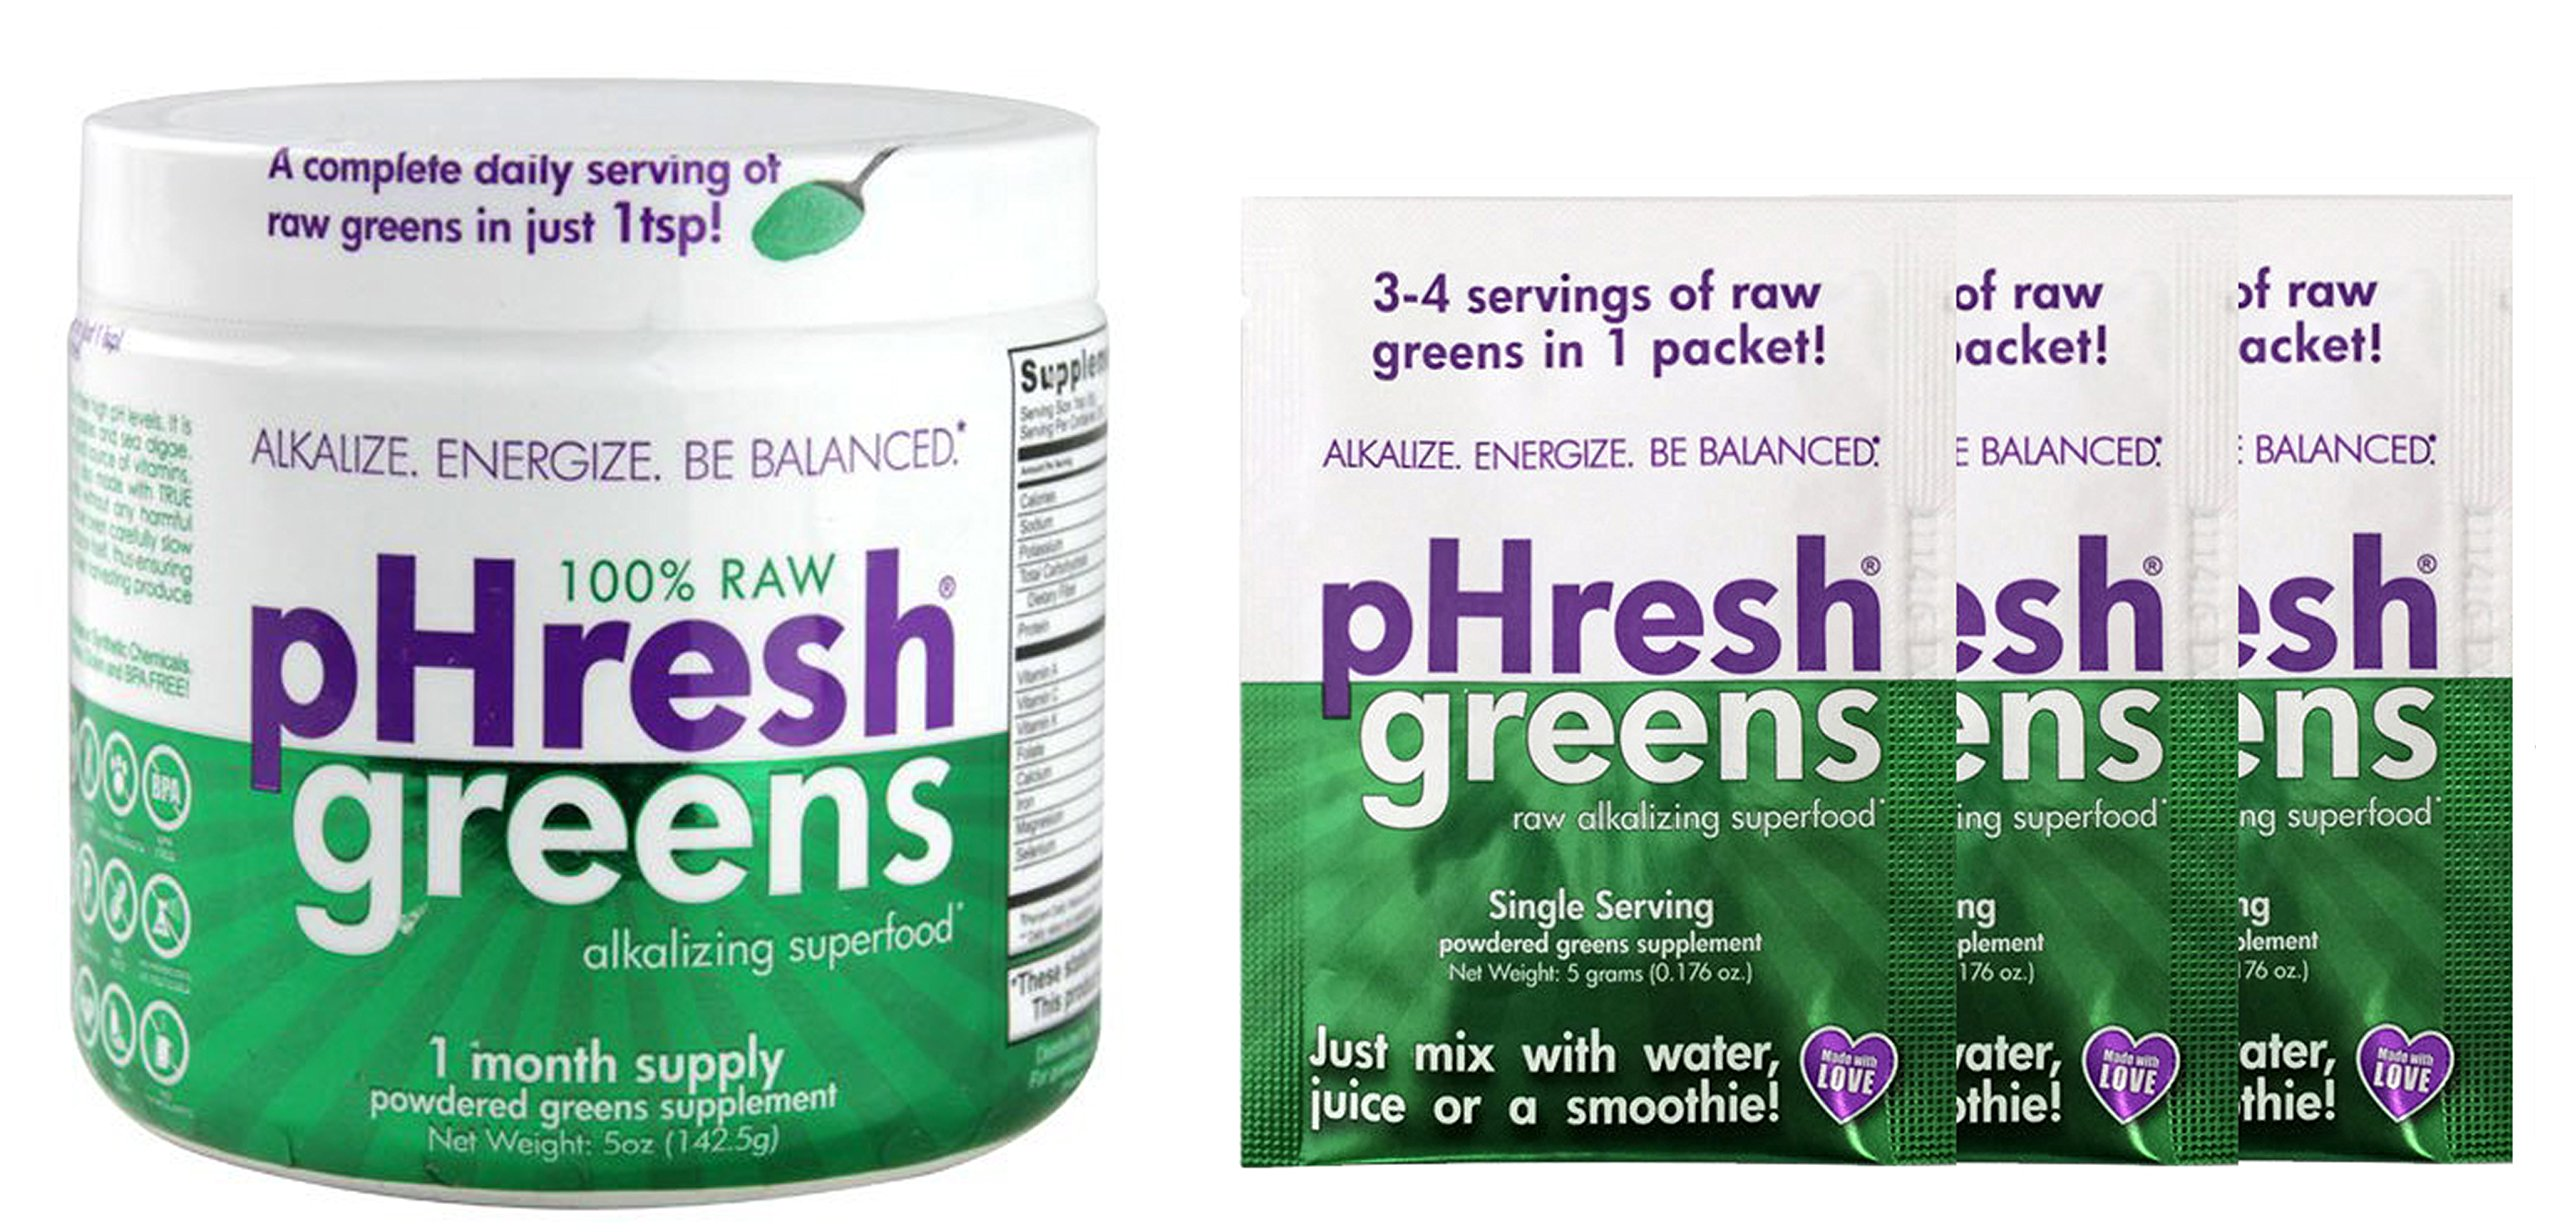 pHresh Products Greens Raw Alkalizing Superfood, 1 Month Supply, 5 Ounce With 3 FREE Travel Packs